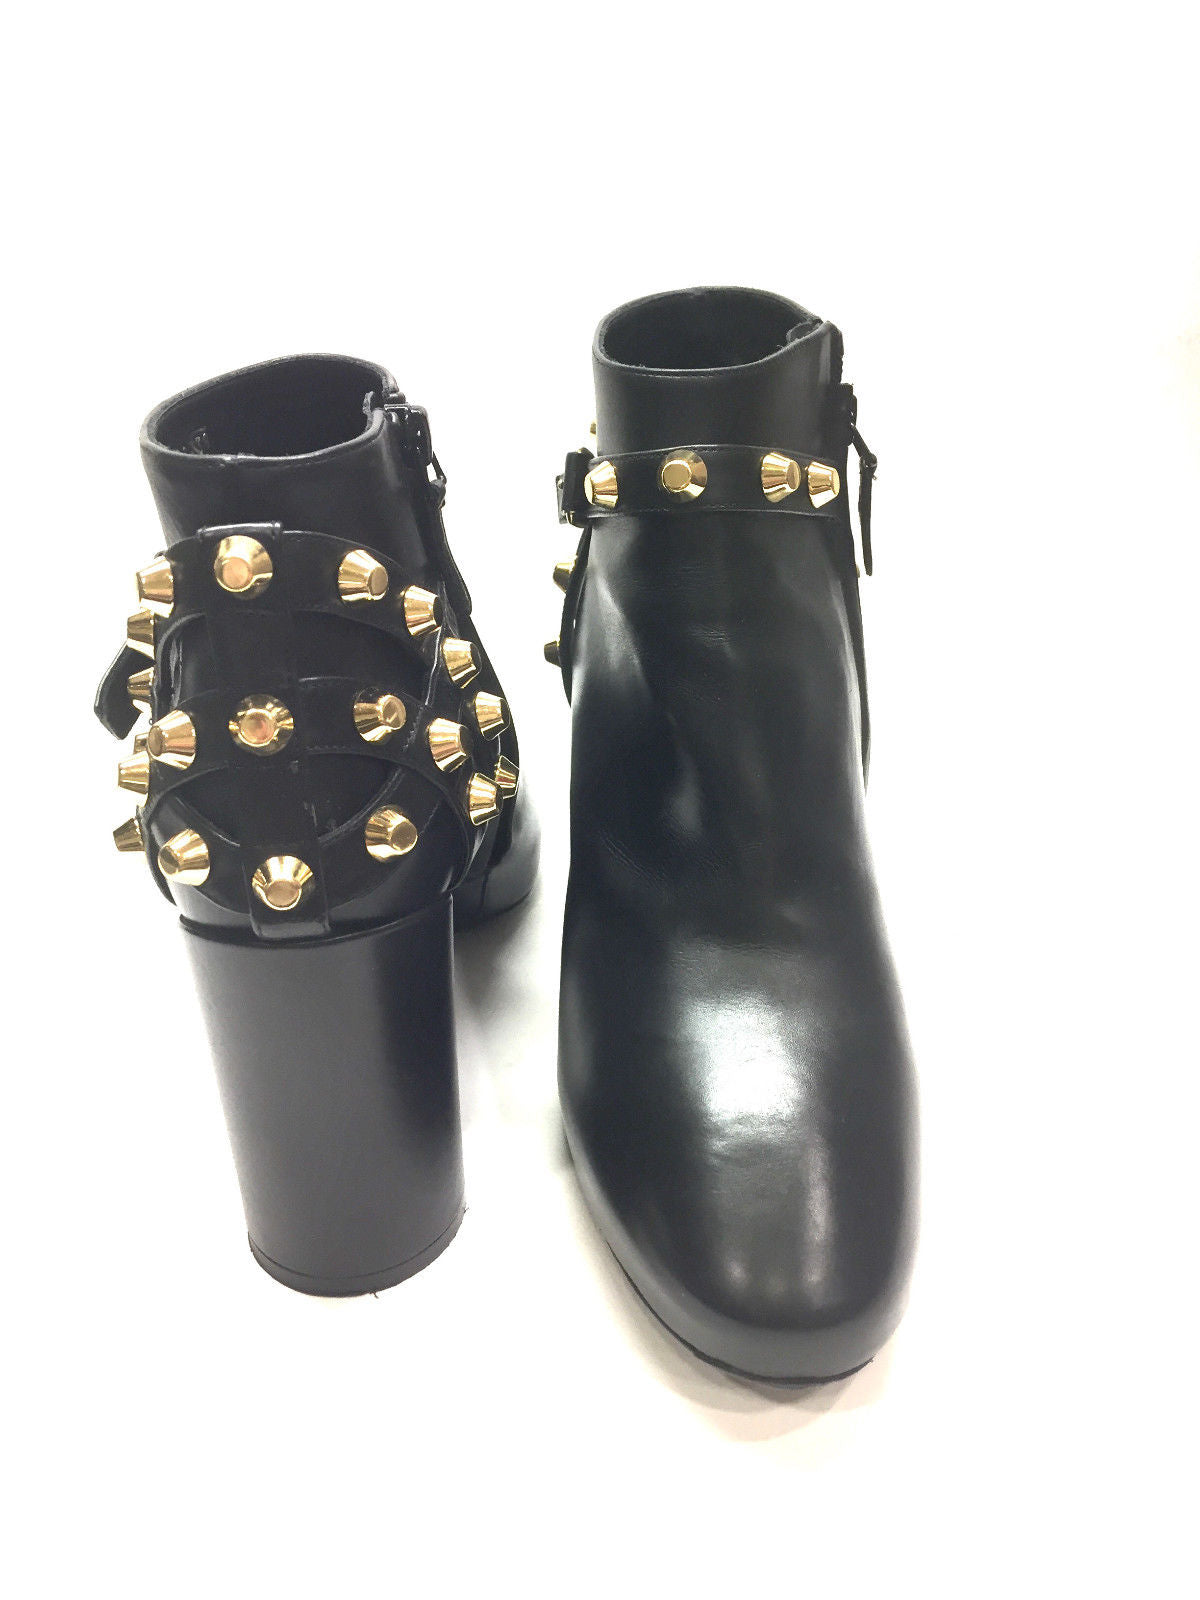 529cac8fade ... bisbiz.com BALENCIAGA Black Leather Gold-Stud Hi-Heel Ankle  Boots/Booties ...